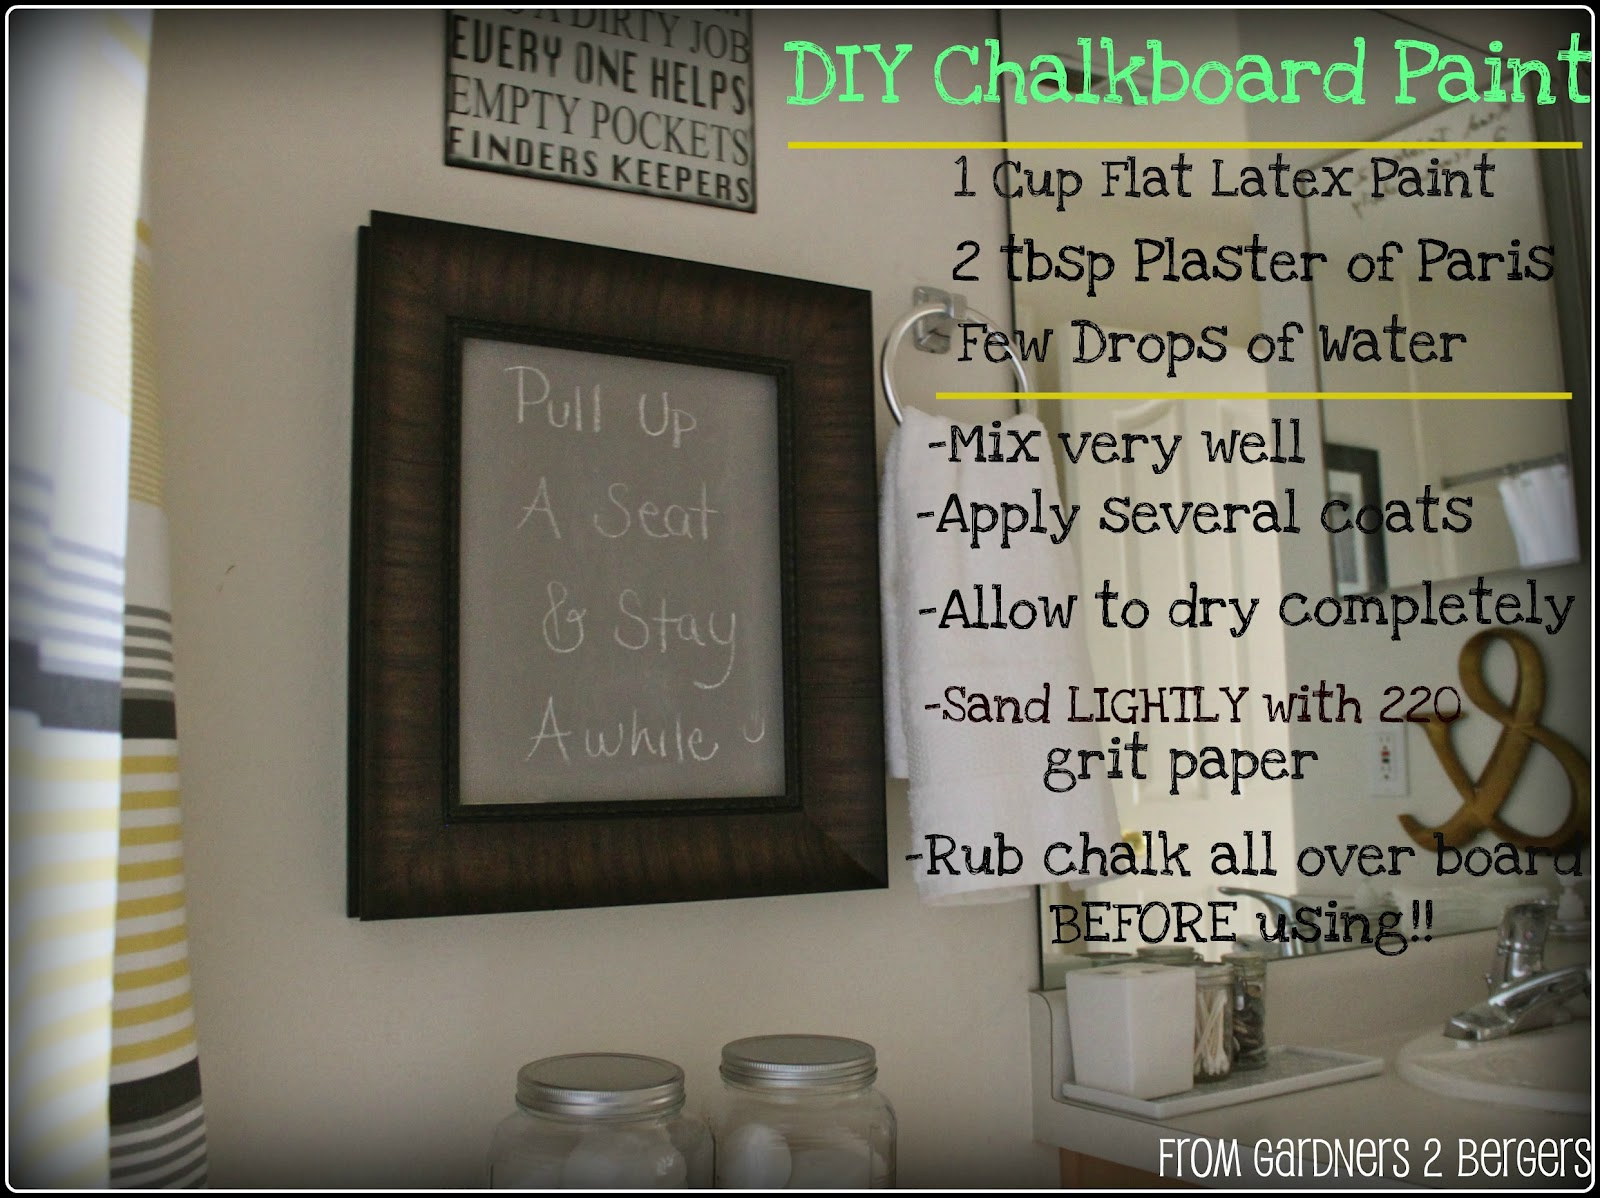 3 Chalkboard Projects Diy Paint Recipe Too